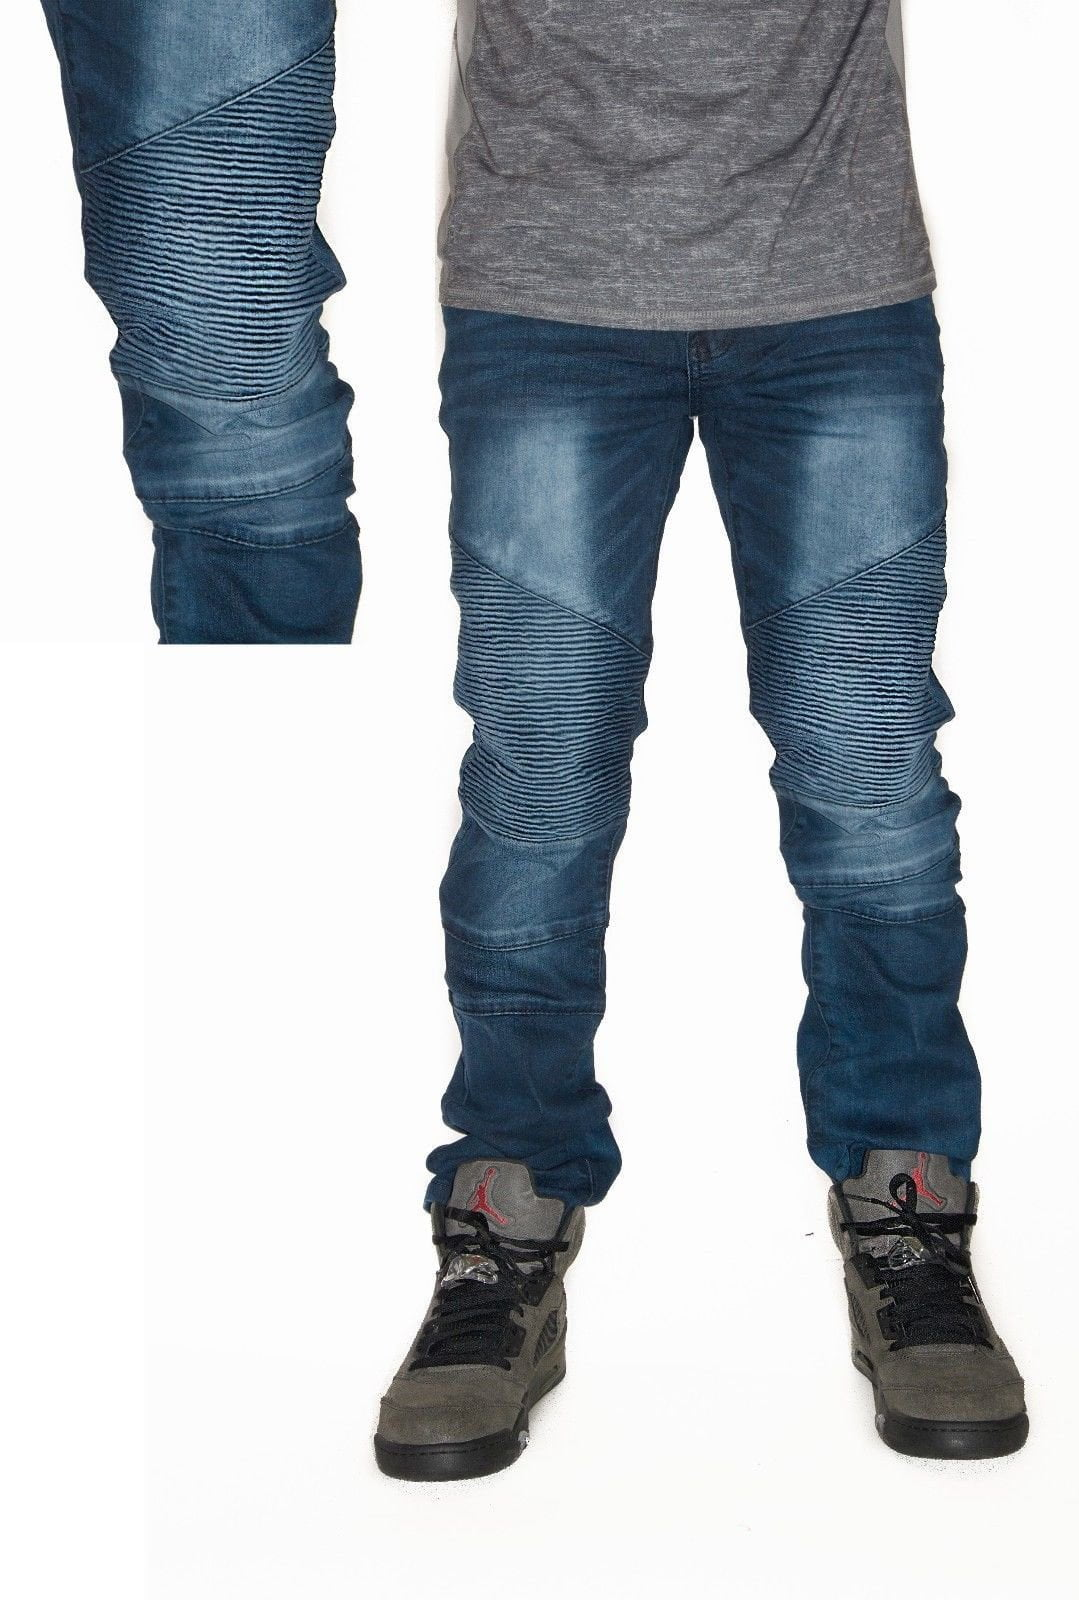 Waimea Summer Collection 433SF Biker Denim - (Blue Steel)